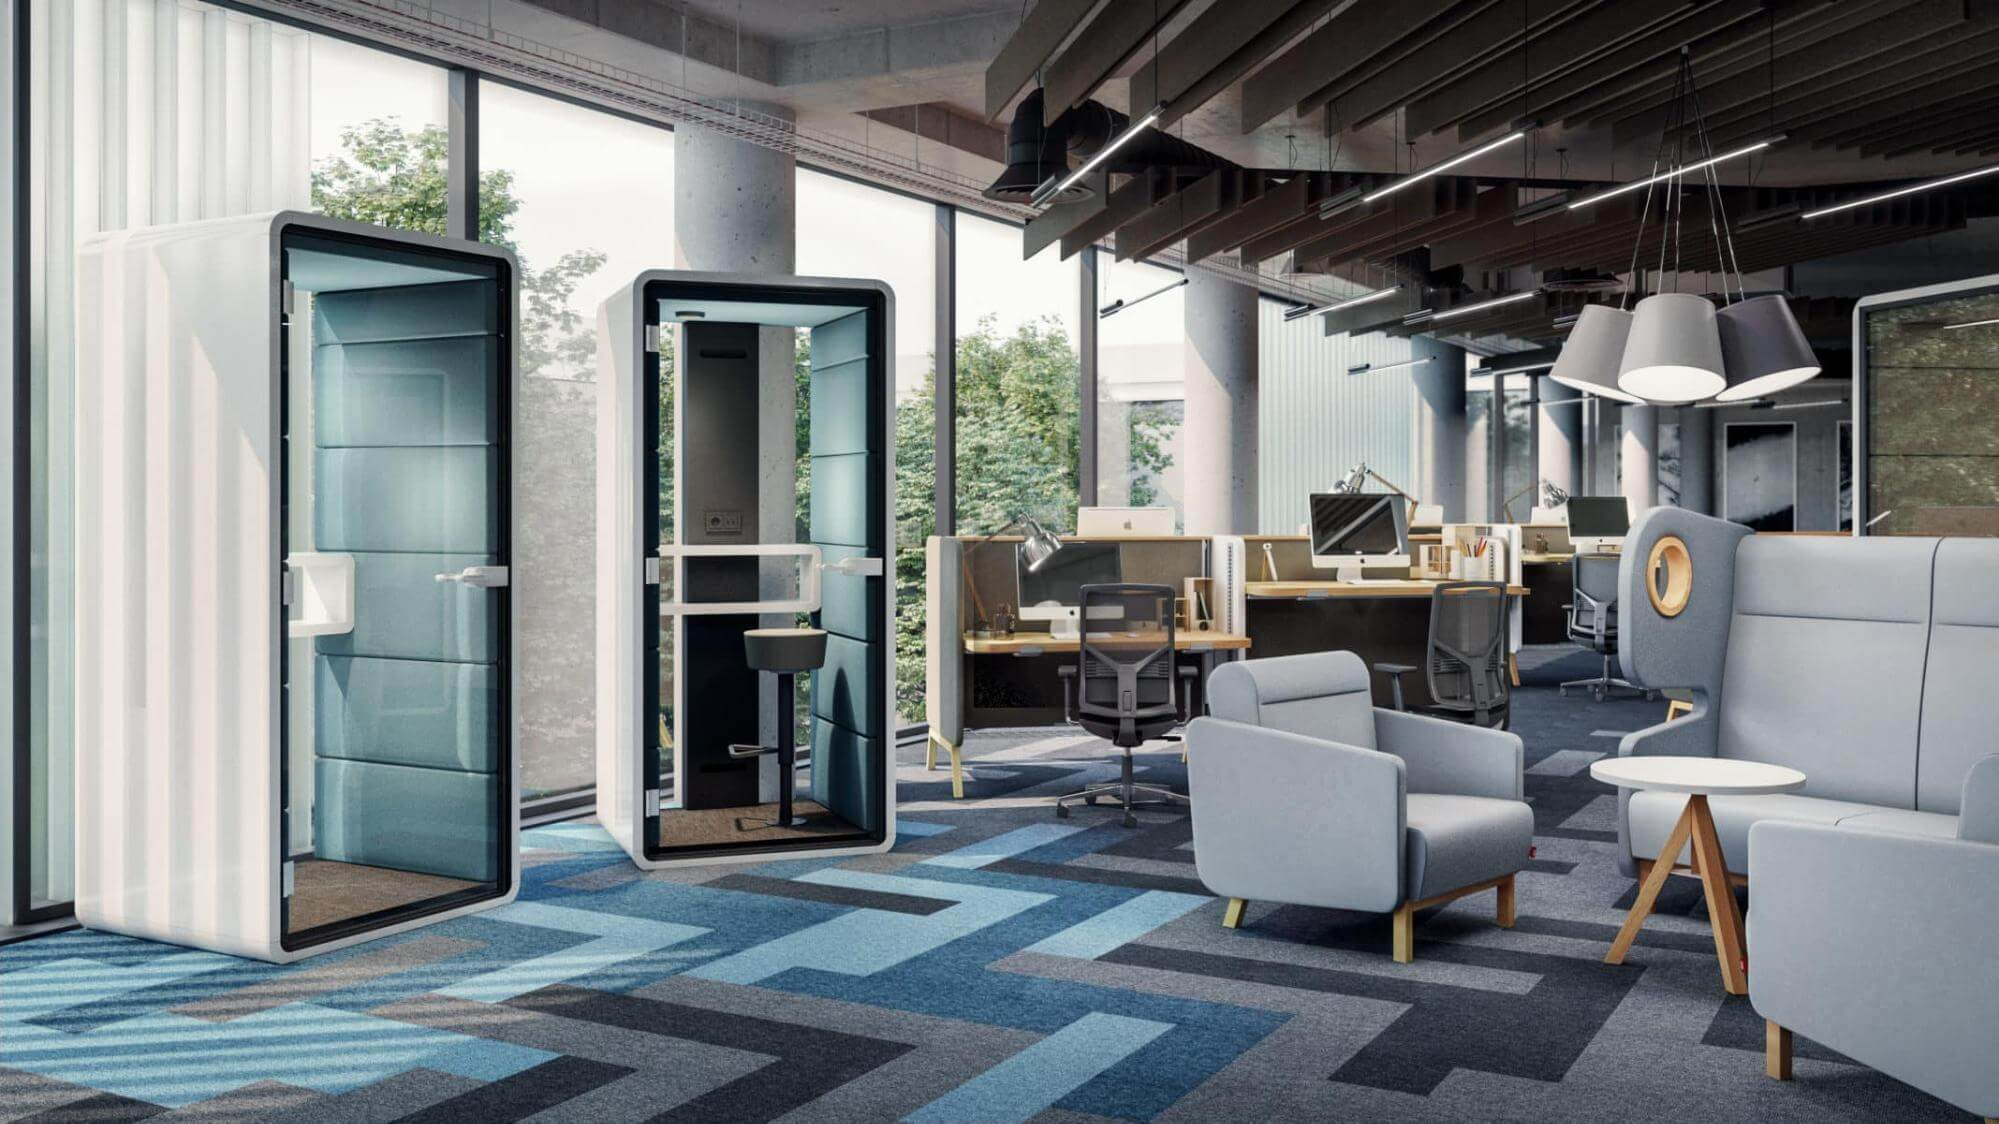 Modern office furniture is an integral part of the office interior